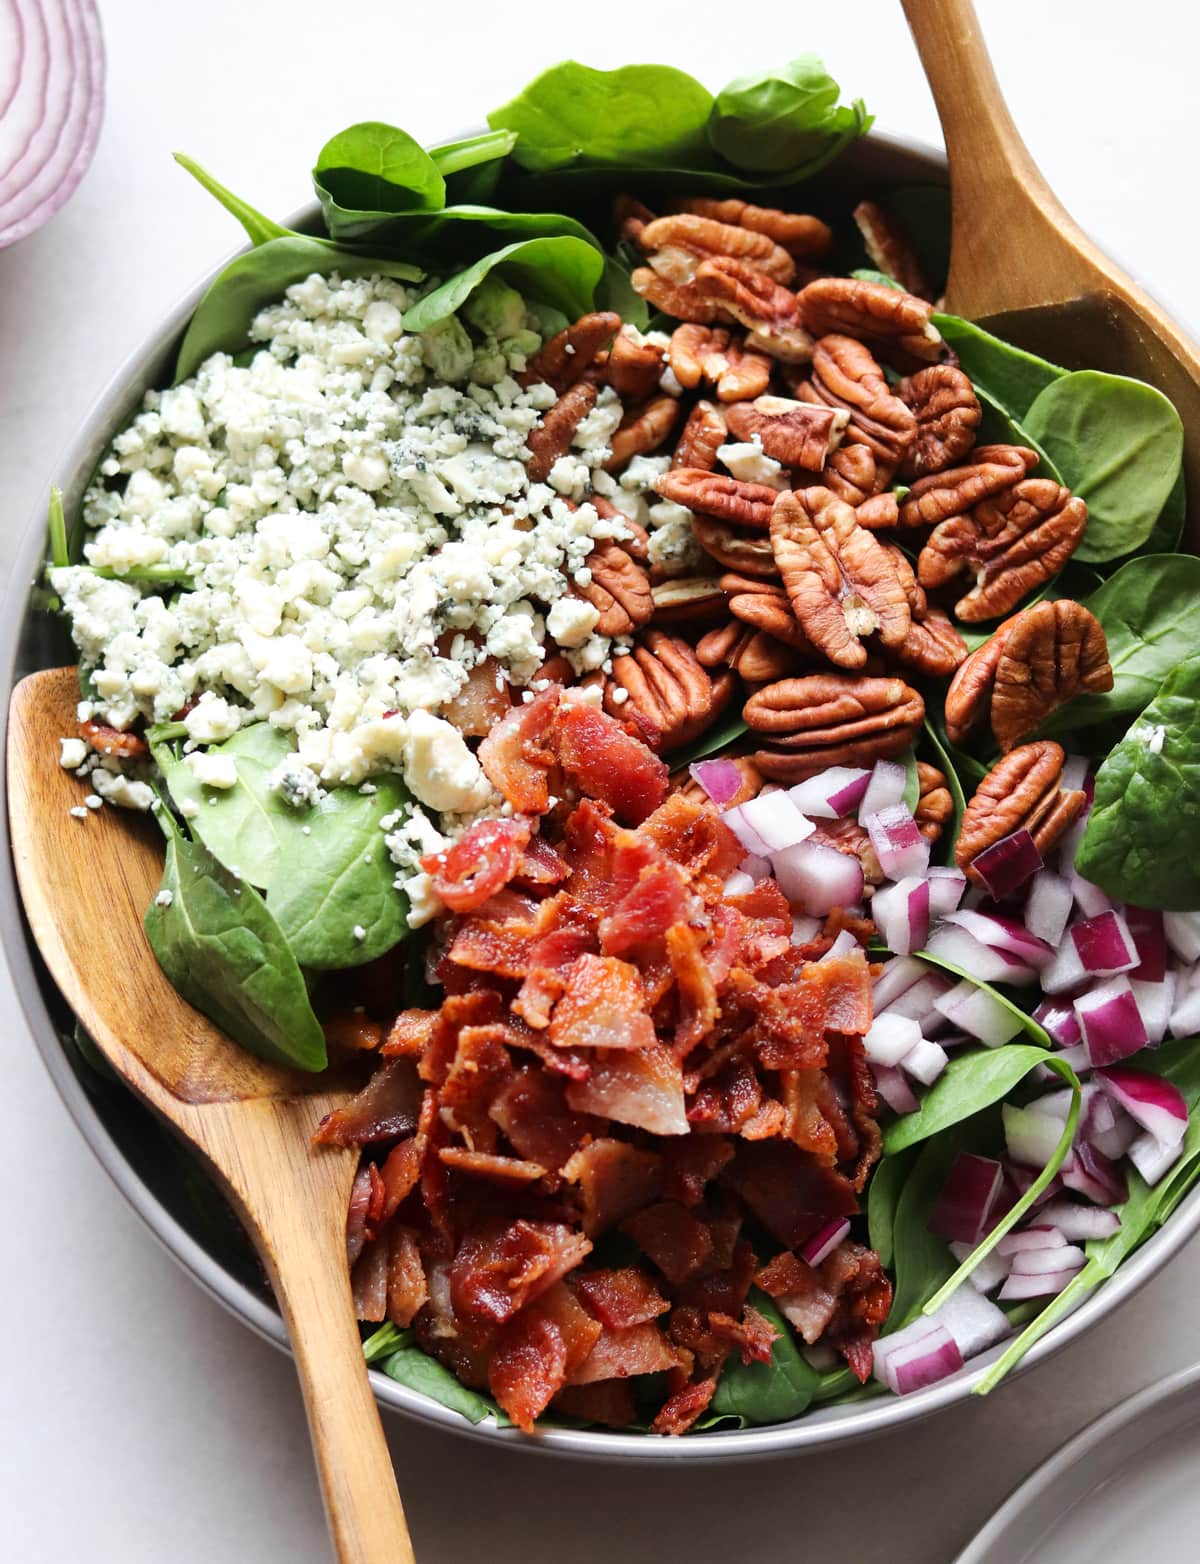 A gray bowl filled with spinach, crumbled bacon, onion, pecans, and blue cheese with two wooden serving forks.